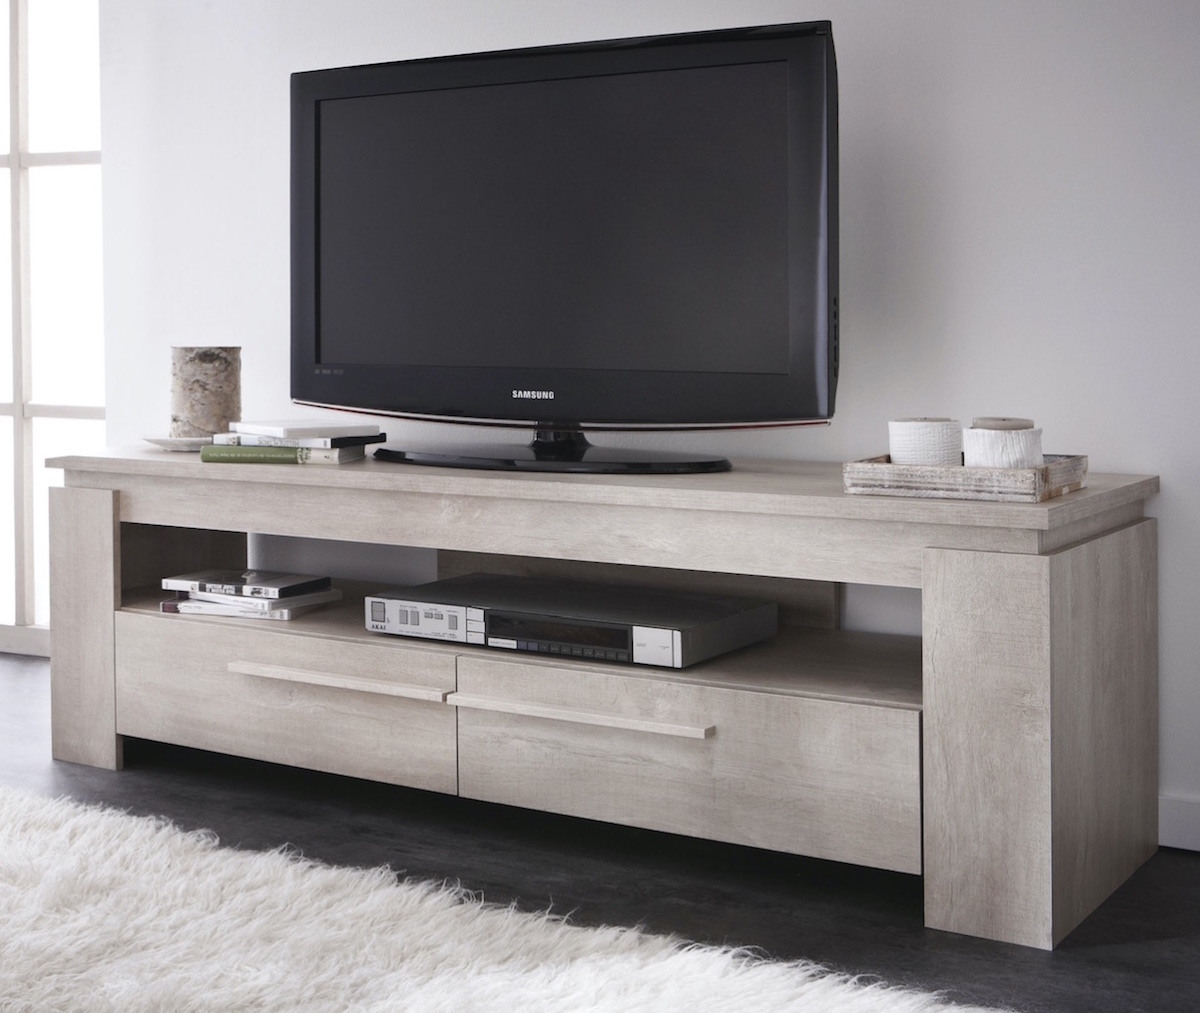 Cablage meuble tv